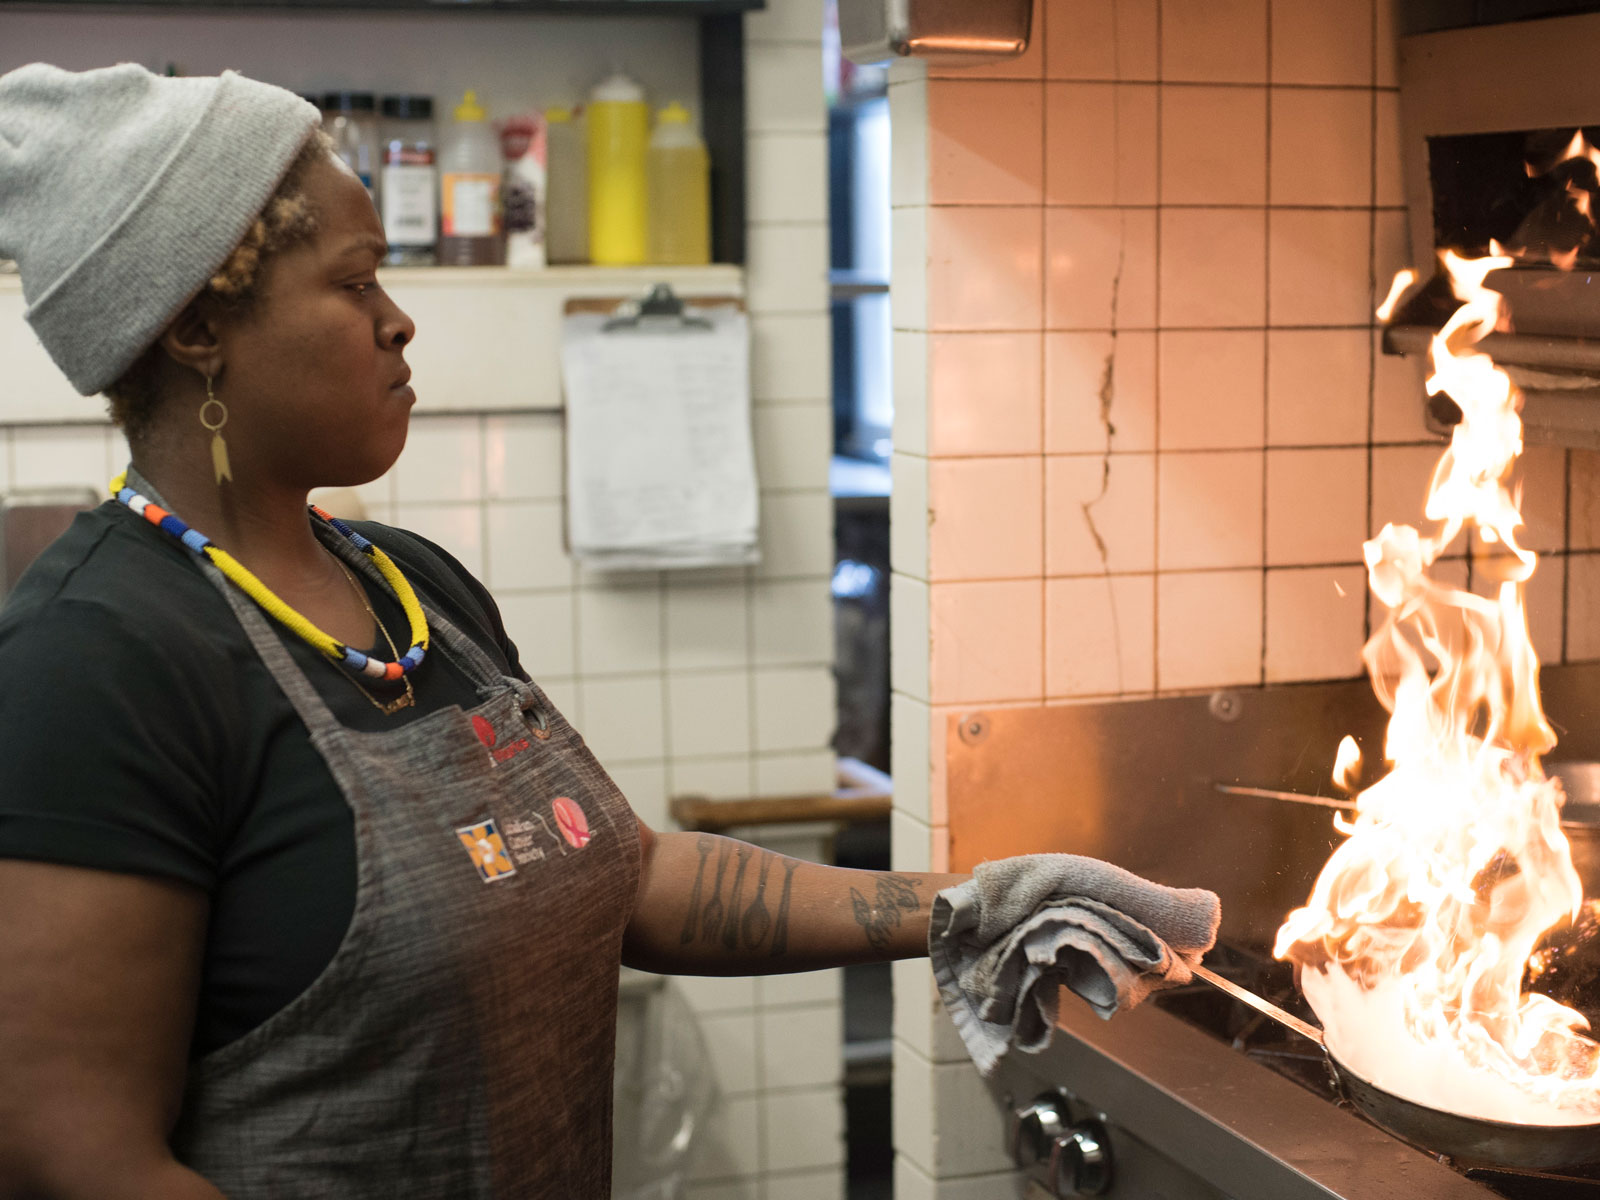 'The Heat'—A Chef Documentary Featuring All Women—Couldn't Come at a Better Time